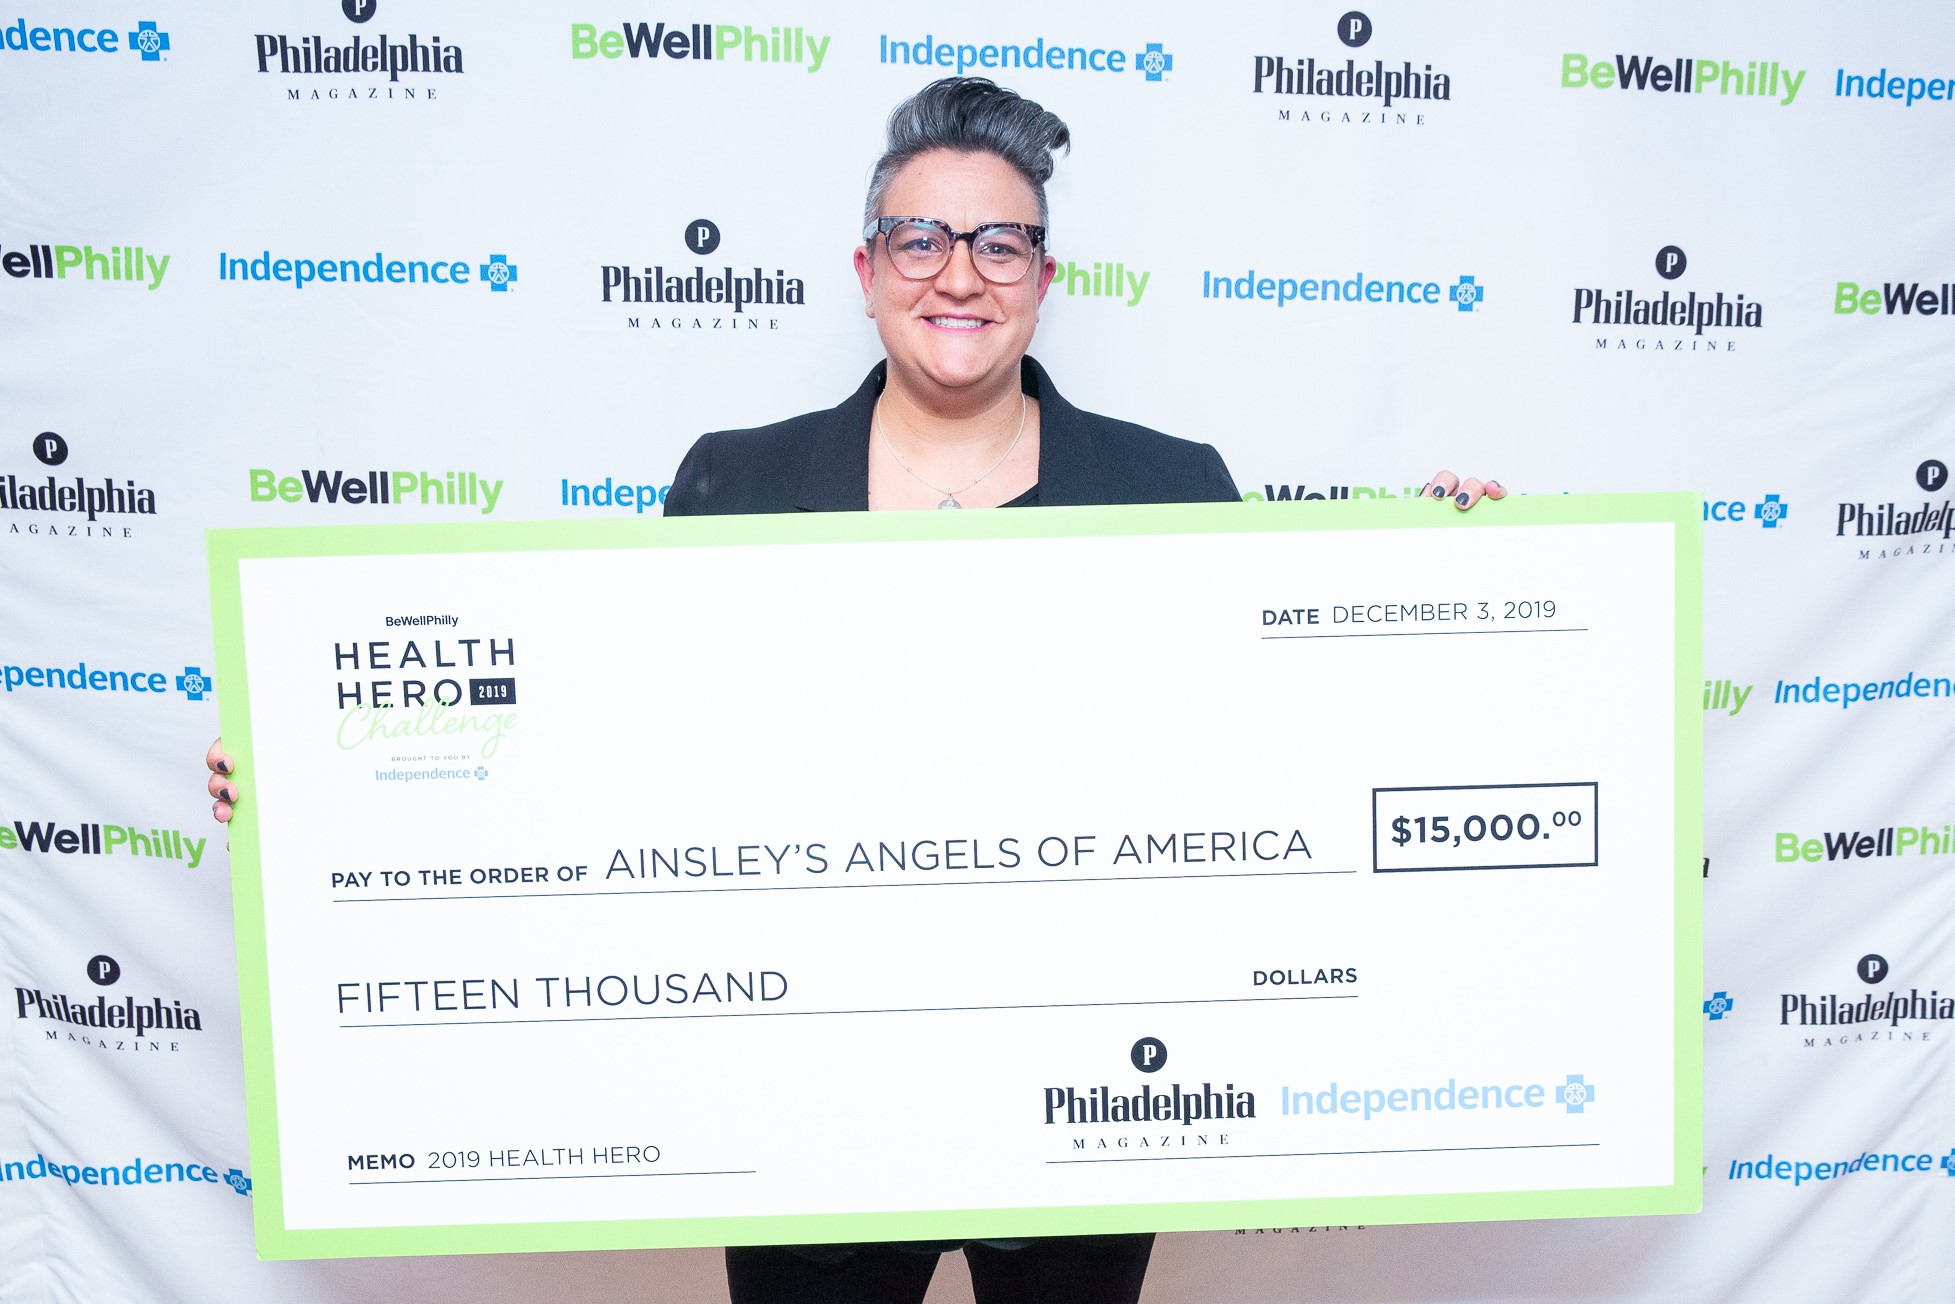 Lansdale Native Named Winner of Be Well Philly's Health Hero Challenge, Earns $15,000 for Charity